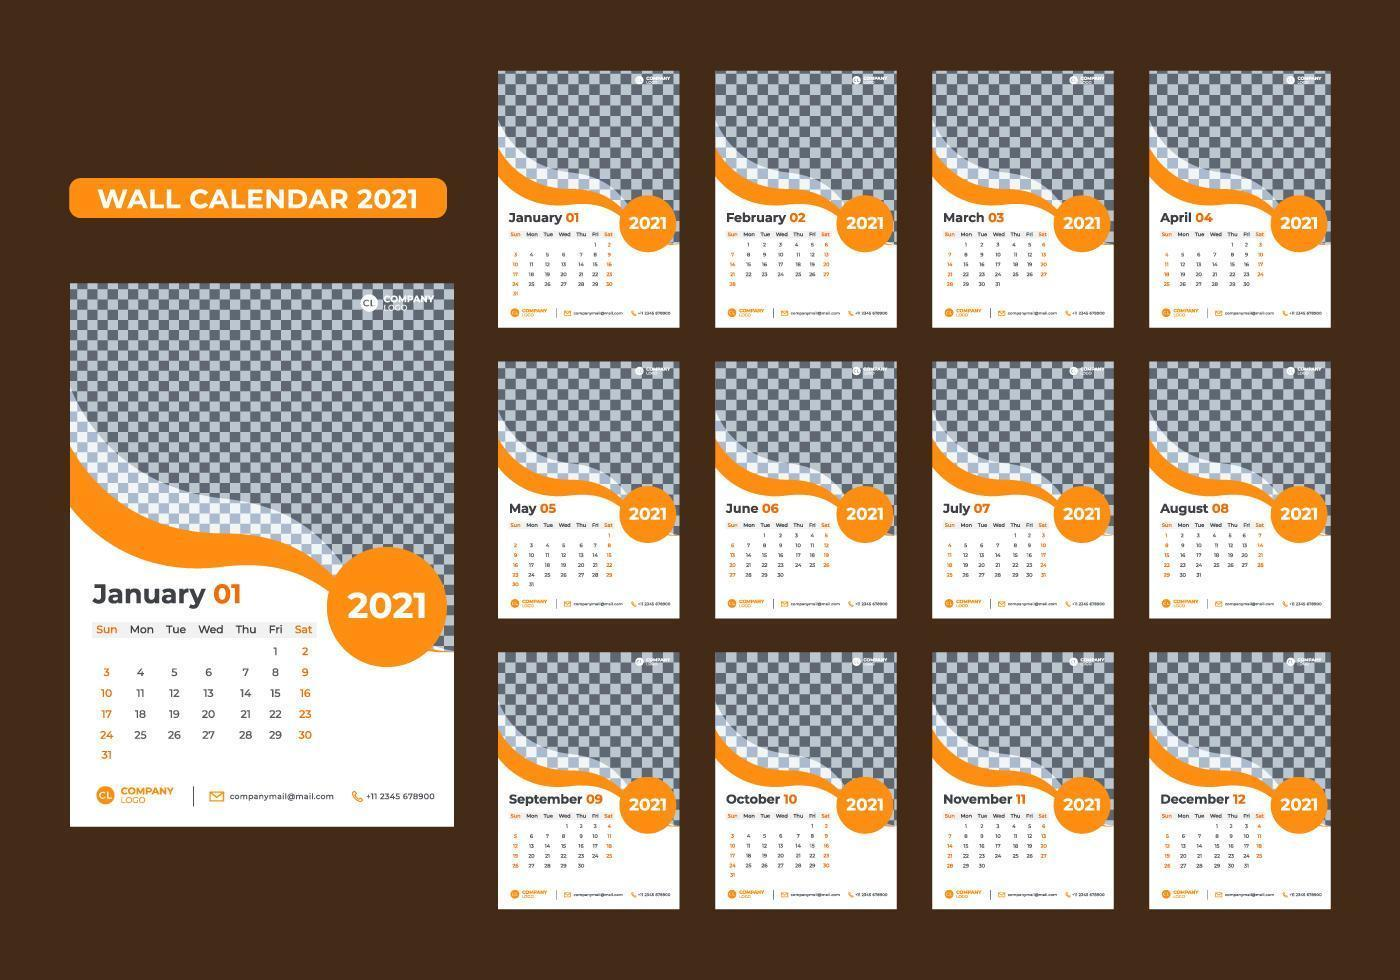 conjunto de plantillas de calendario de pared de 12 meses 2021 vector